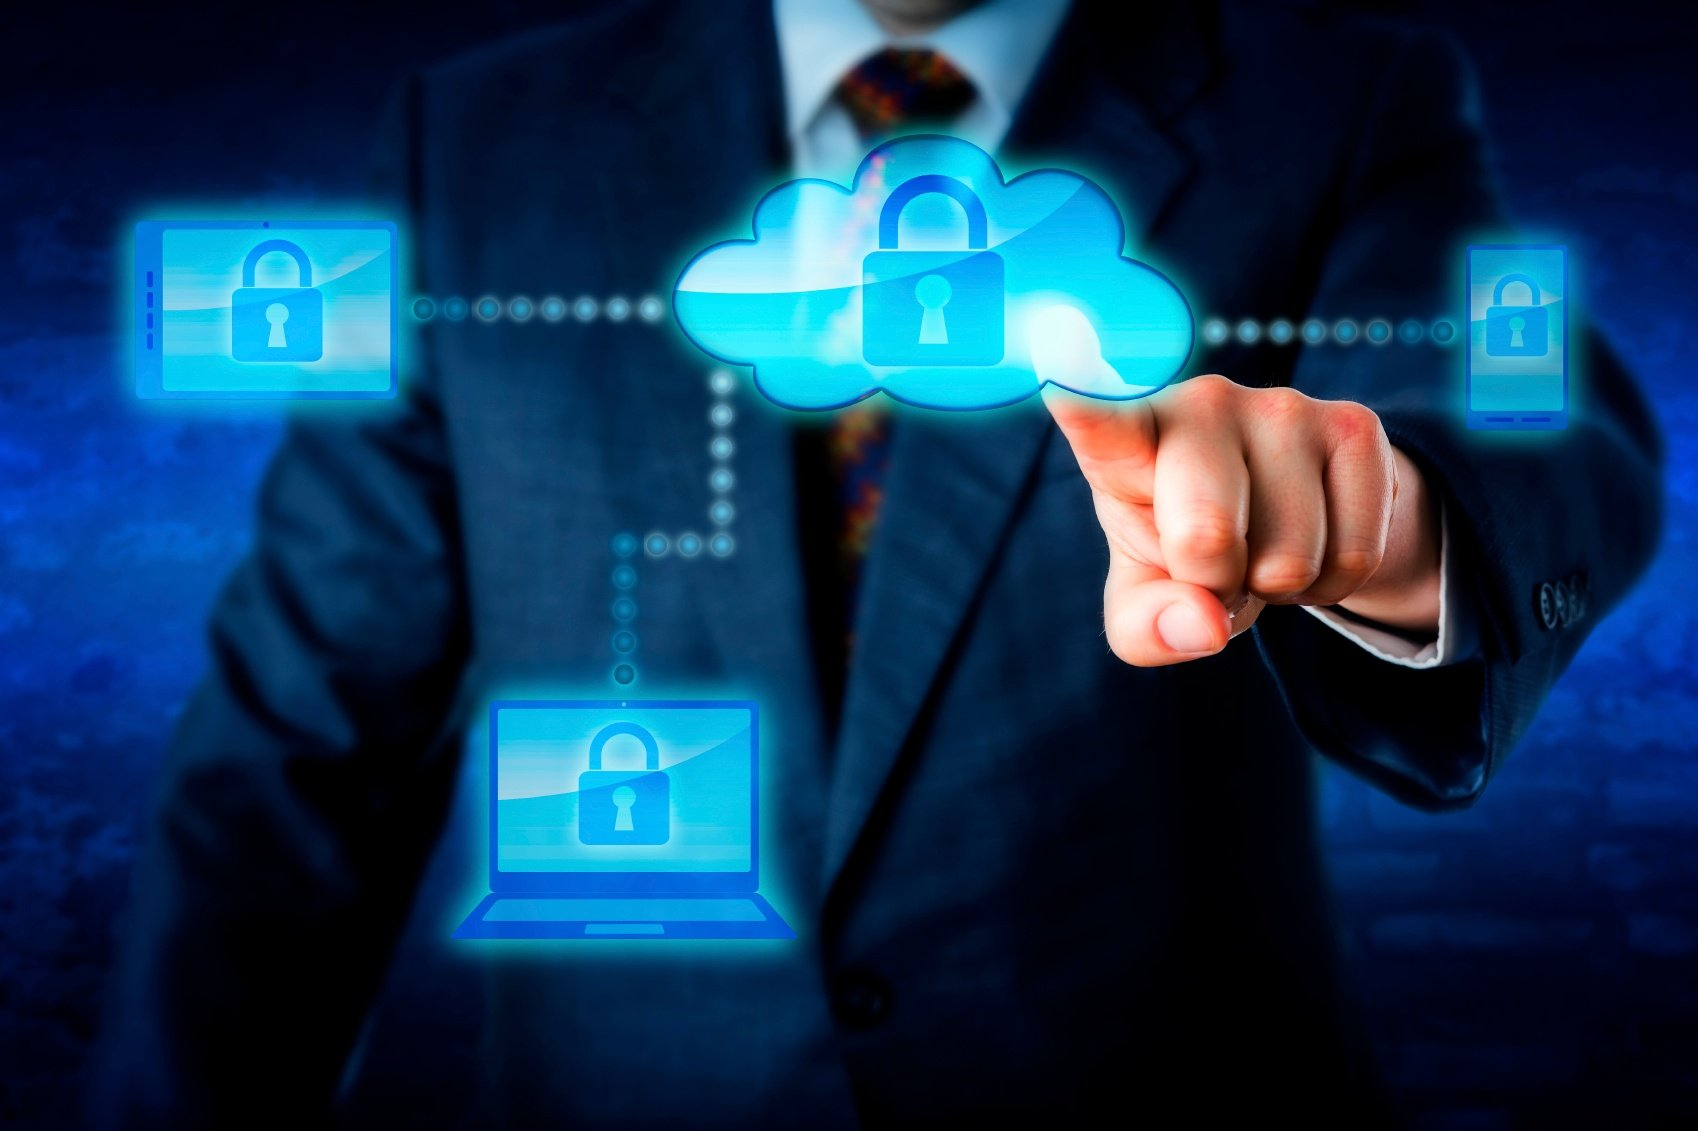 Mortgage Company Security is Vital for Long-Term Sustainability